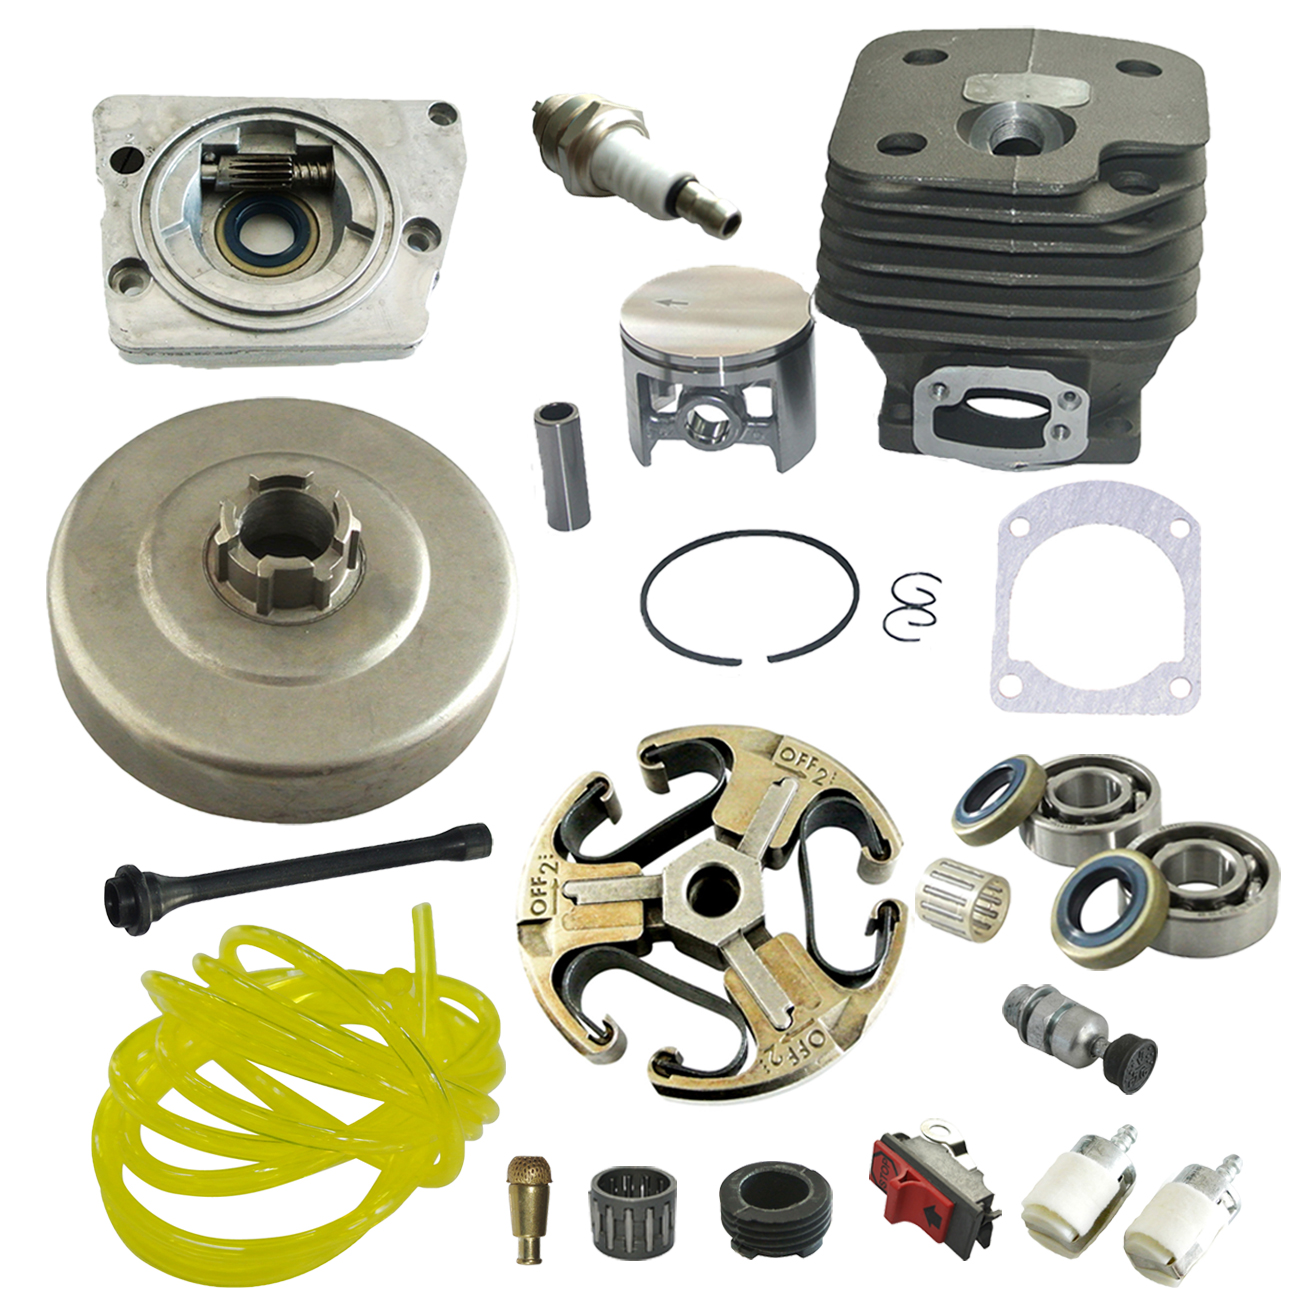 52mm Piston & Clutch Drum & Oil Pump & Cylinder Kit Fits For HUSQVARNA 268 272 Chainsaw oil pump with 2pcs worm gear wheel fits husqvarna 61 266 268 162 272 replace 501512501 501513801